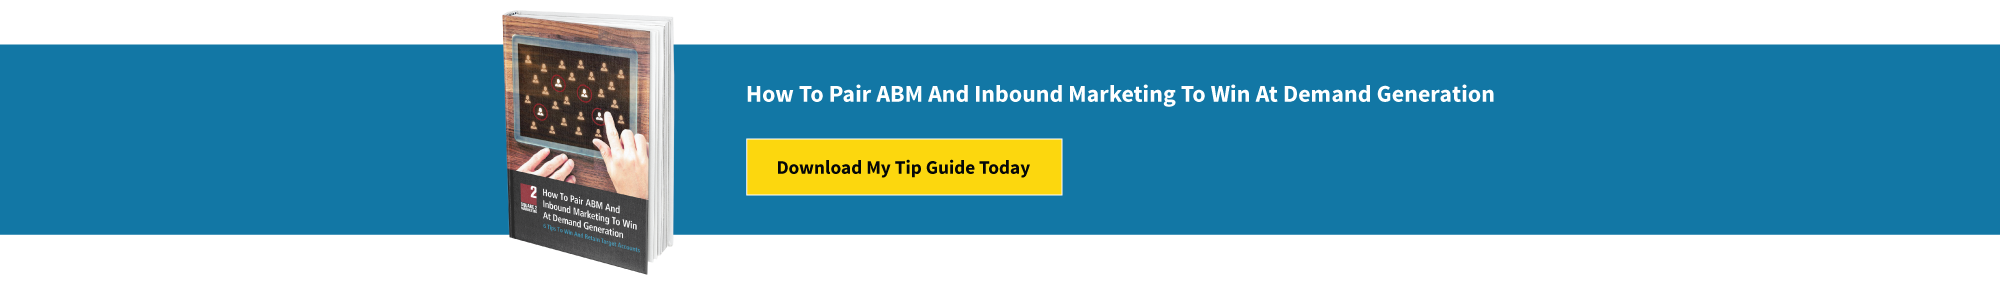 Tip Guide How To Pair ABM And Inbound Marketing To Win At Demand Generation